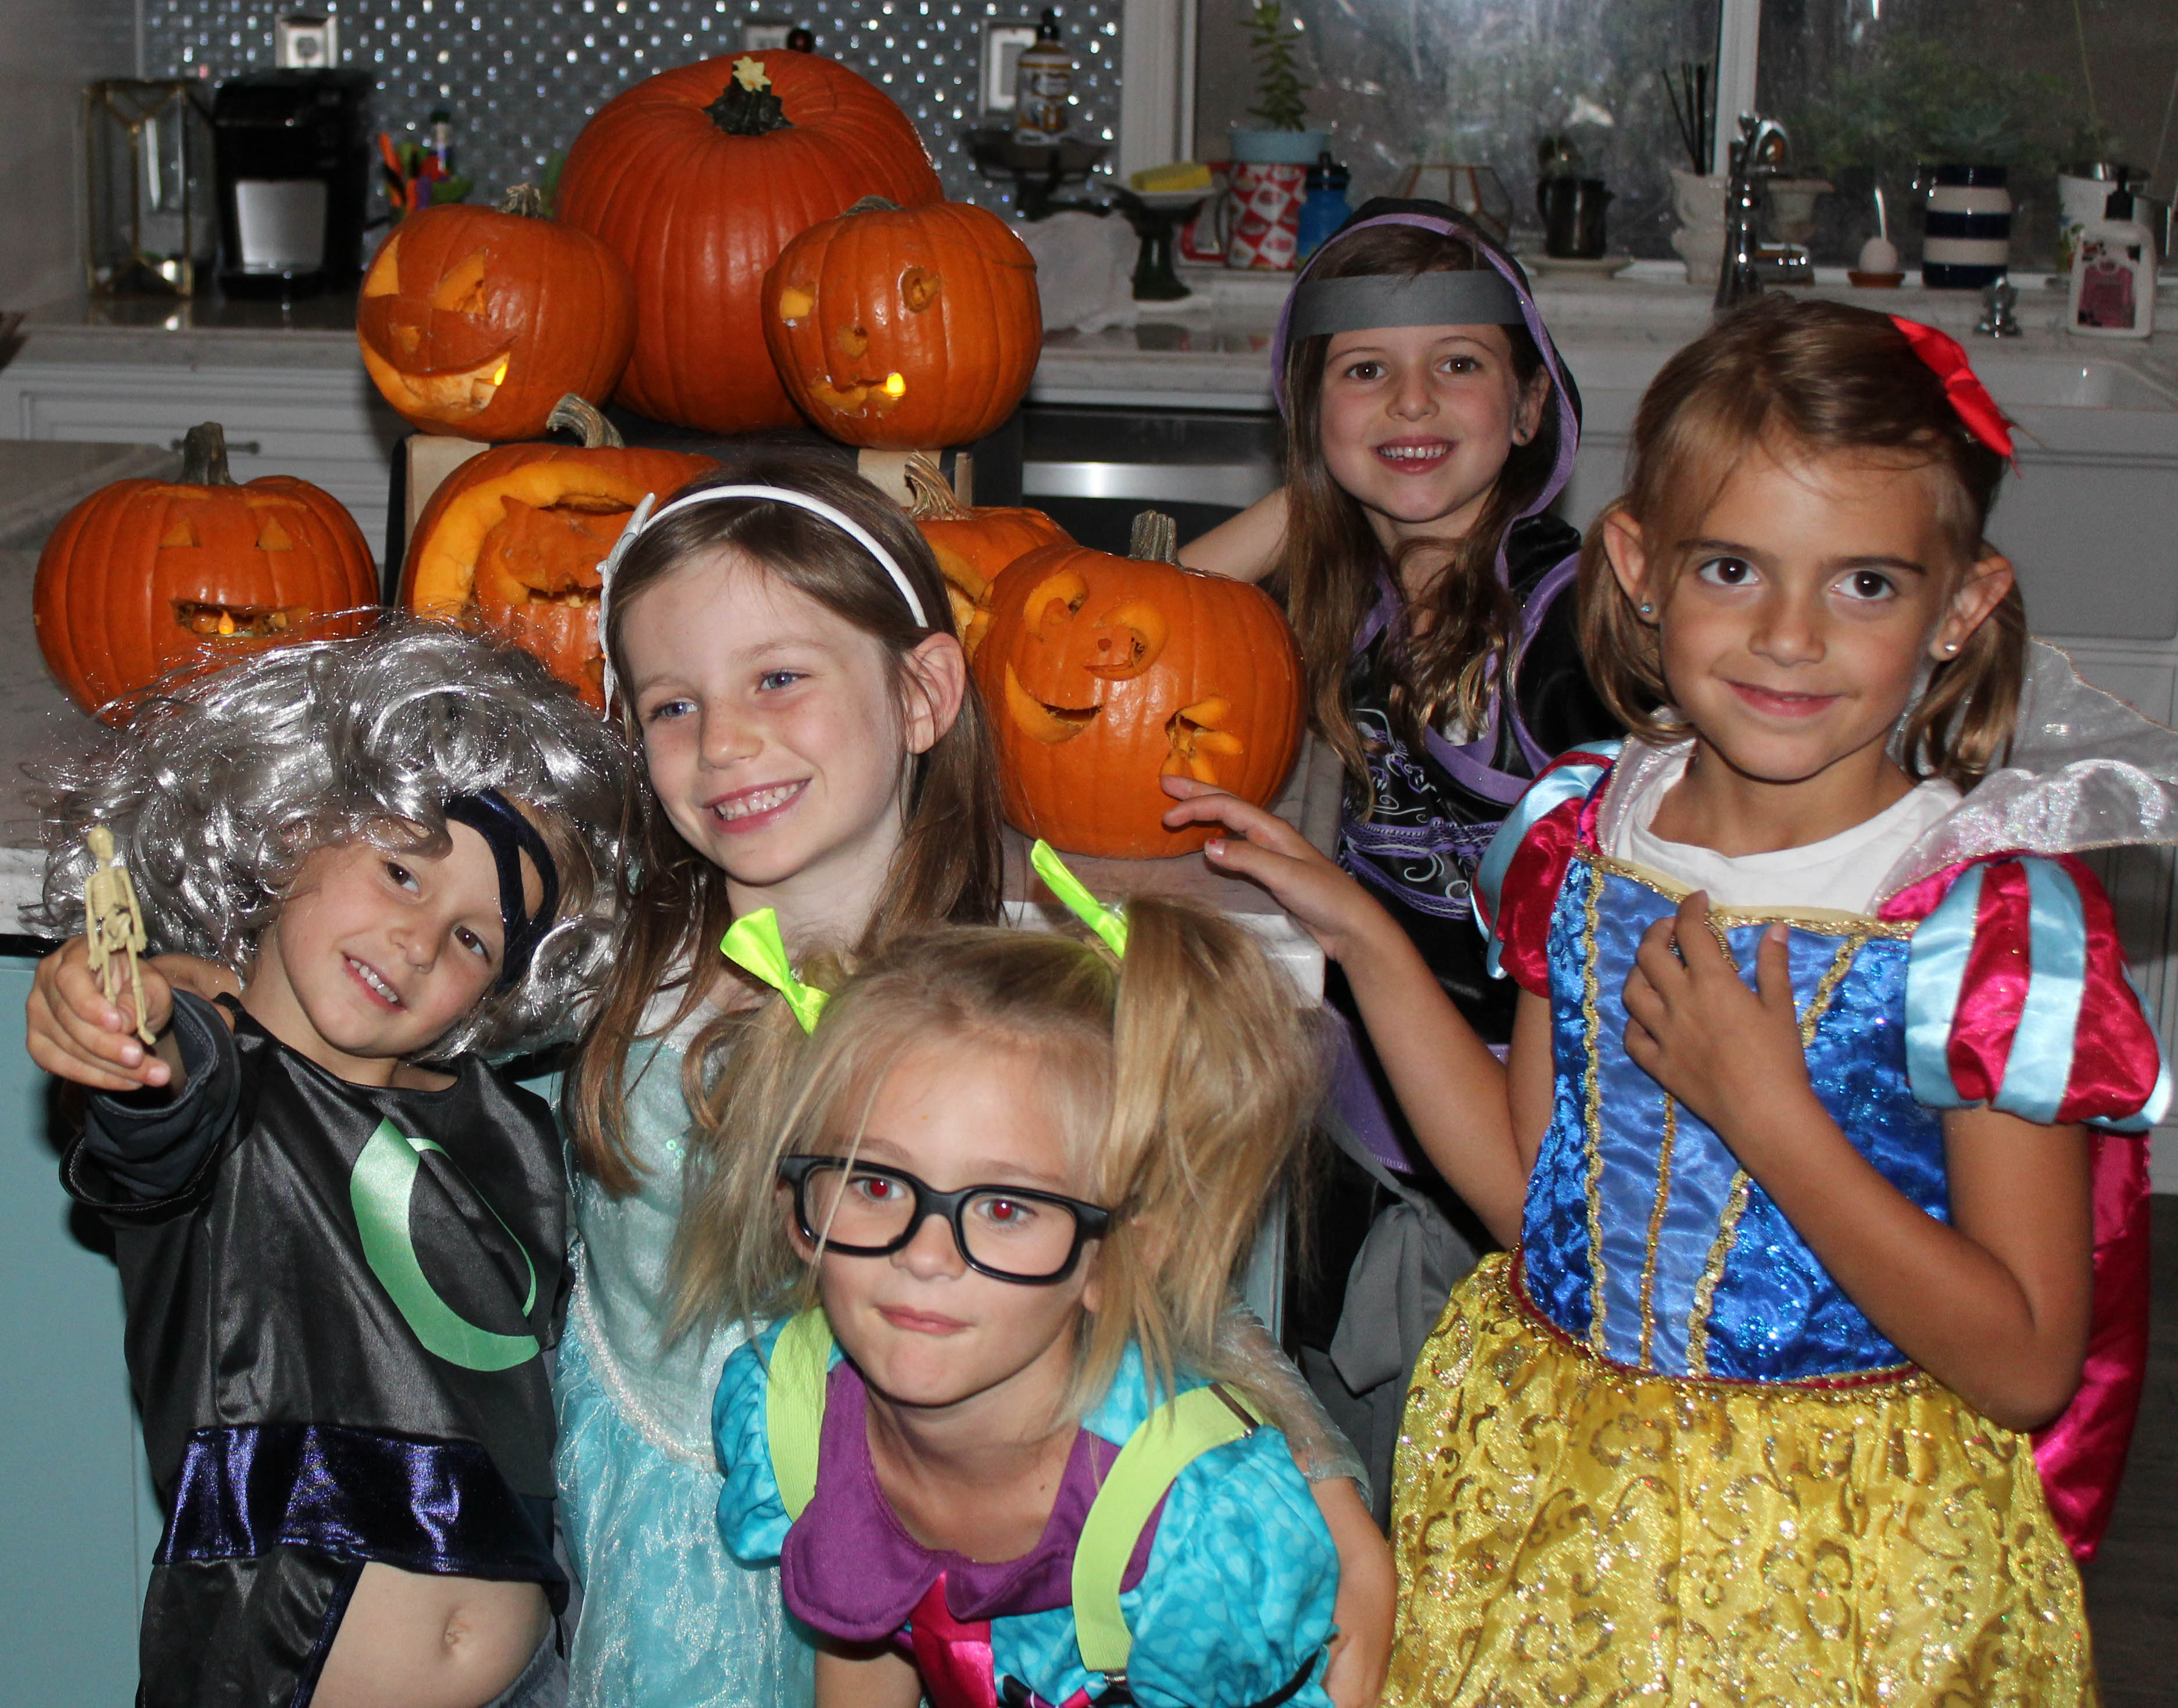 pumpkin-carving-party-costumes-kids-halloween-61-copy